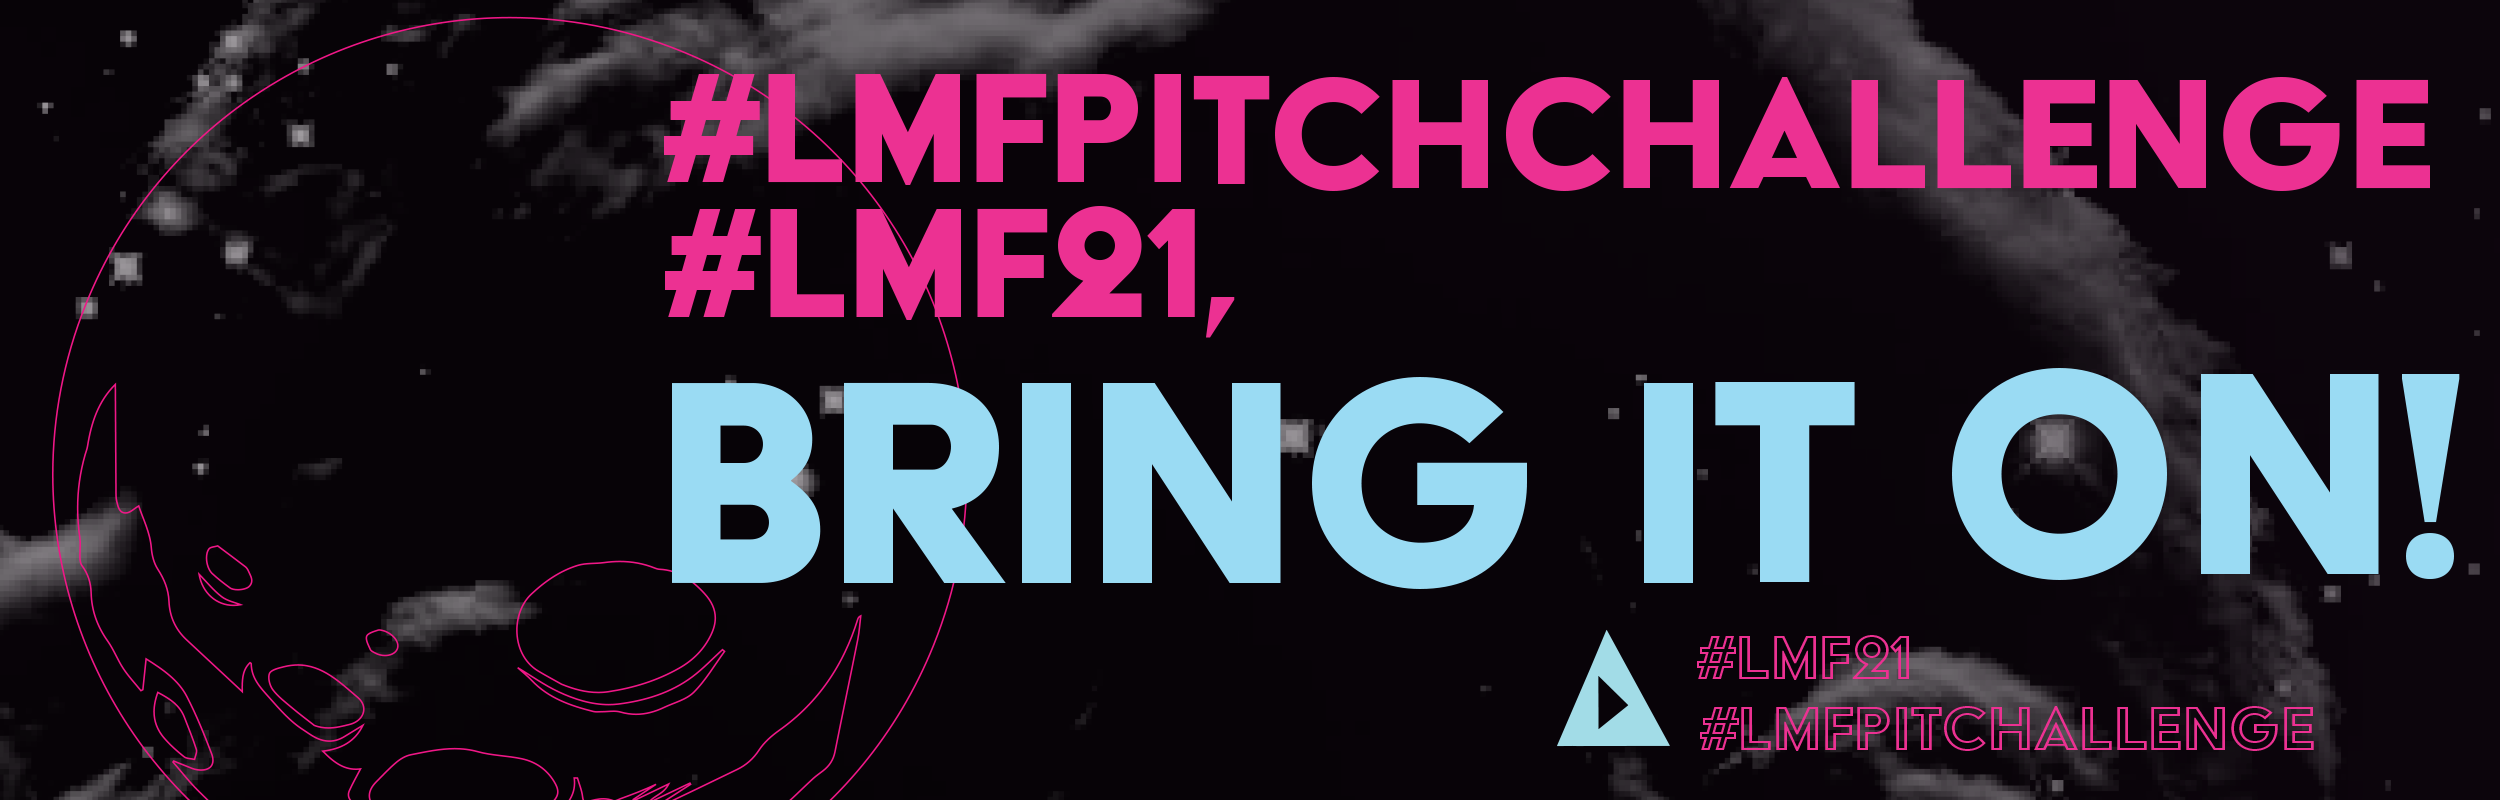 Submit to the #LMFPitchChallenge!